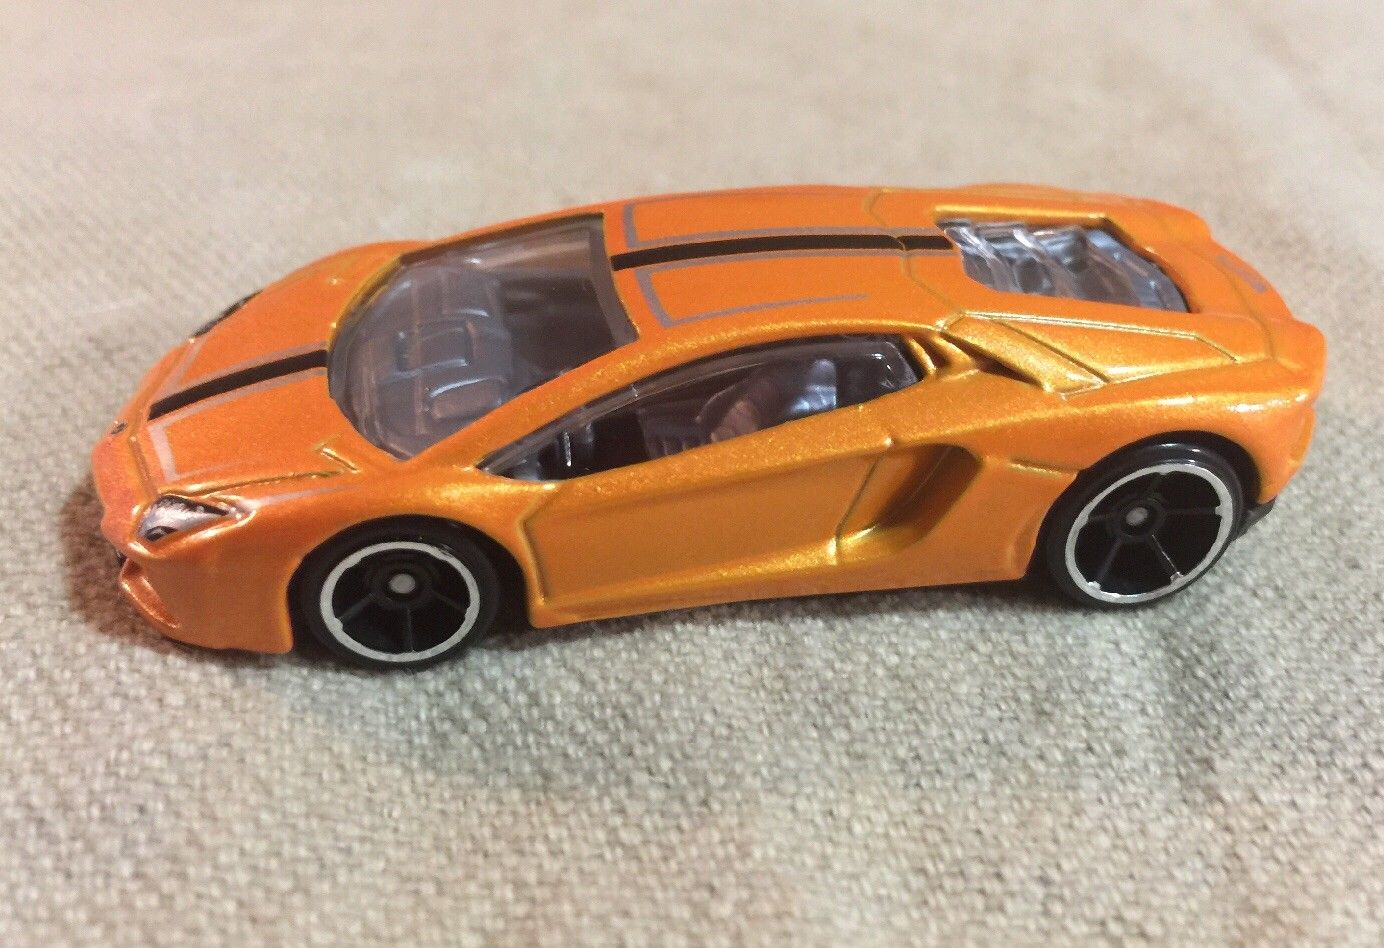 amazing 2016 hot wheels lamborghini aventador lp 700-4 exotics loose